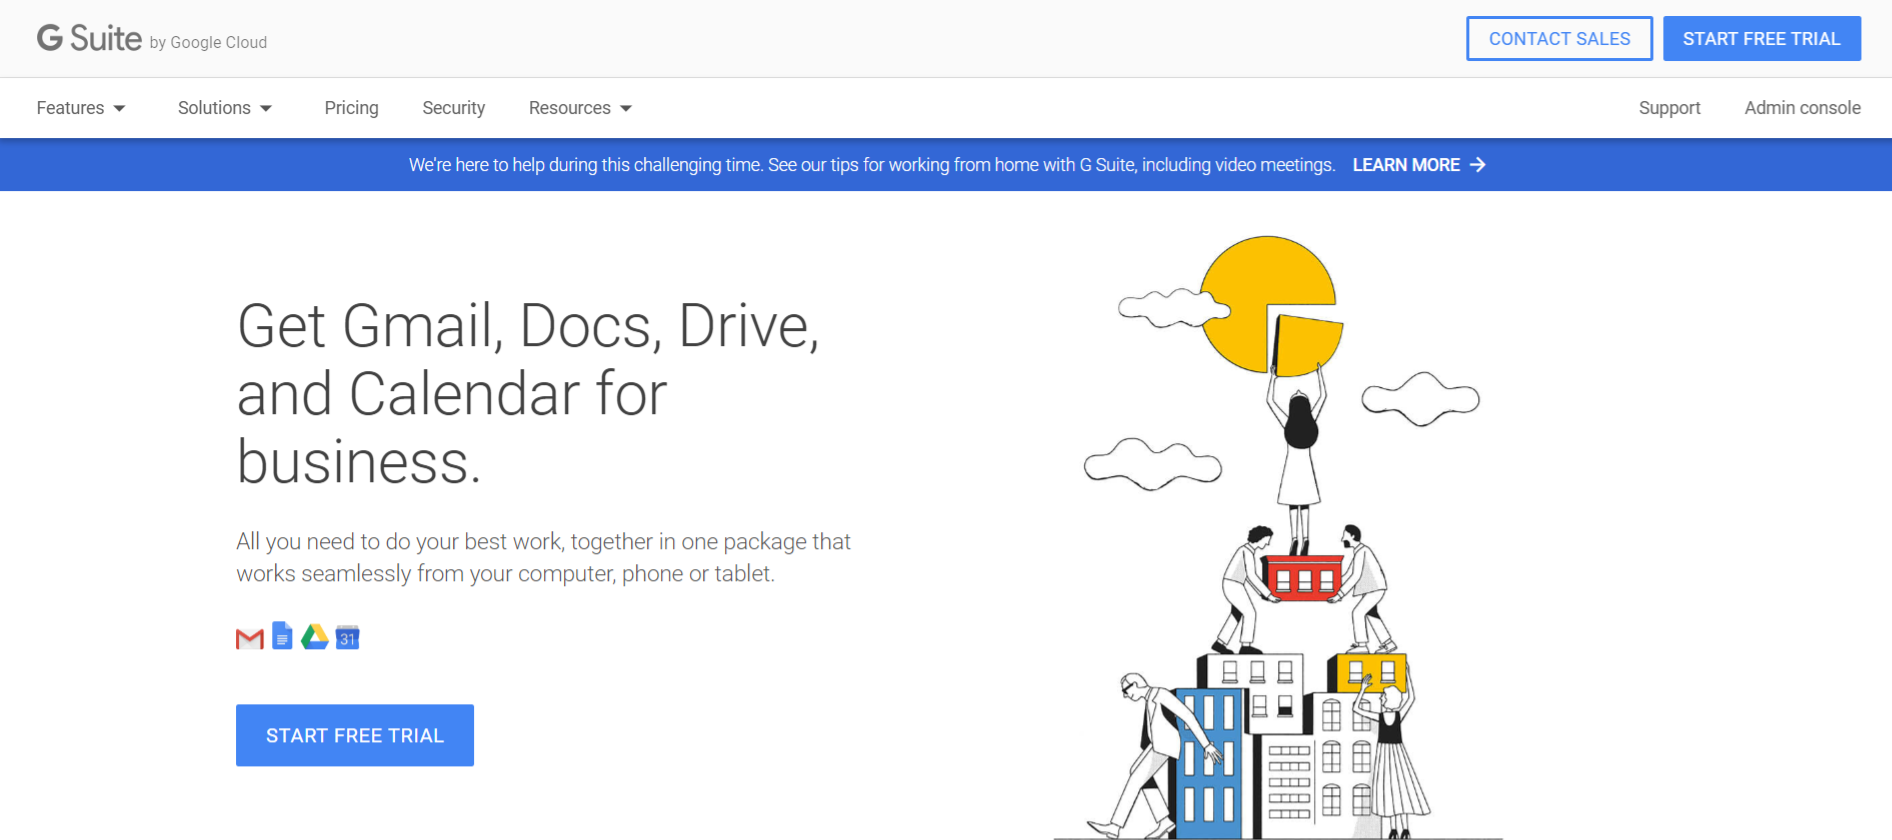 G Suite: Remote collabortaion tool